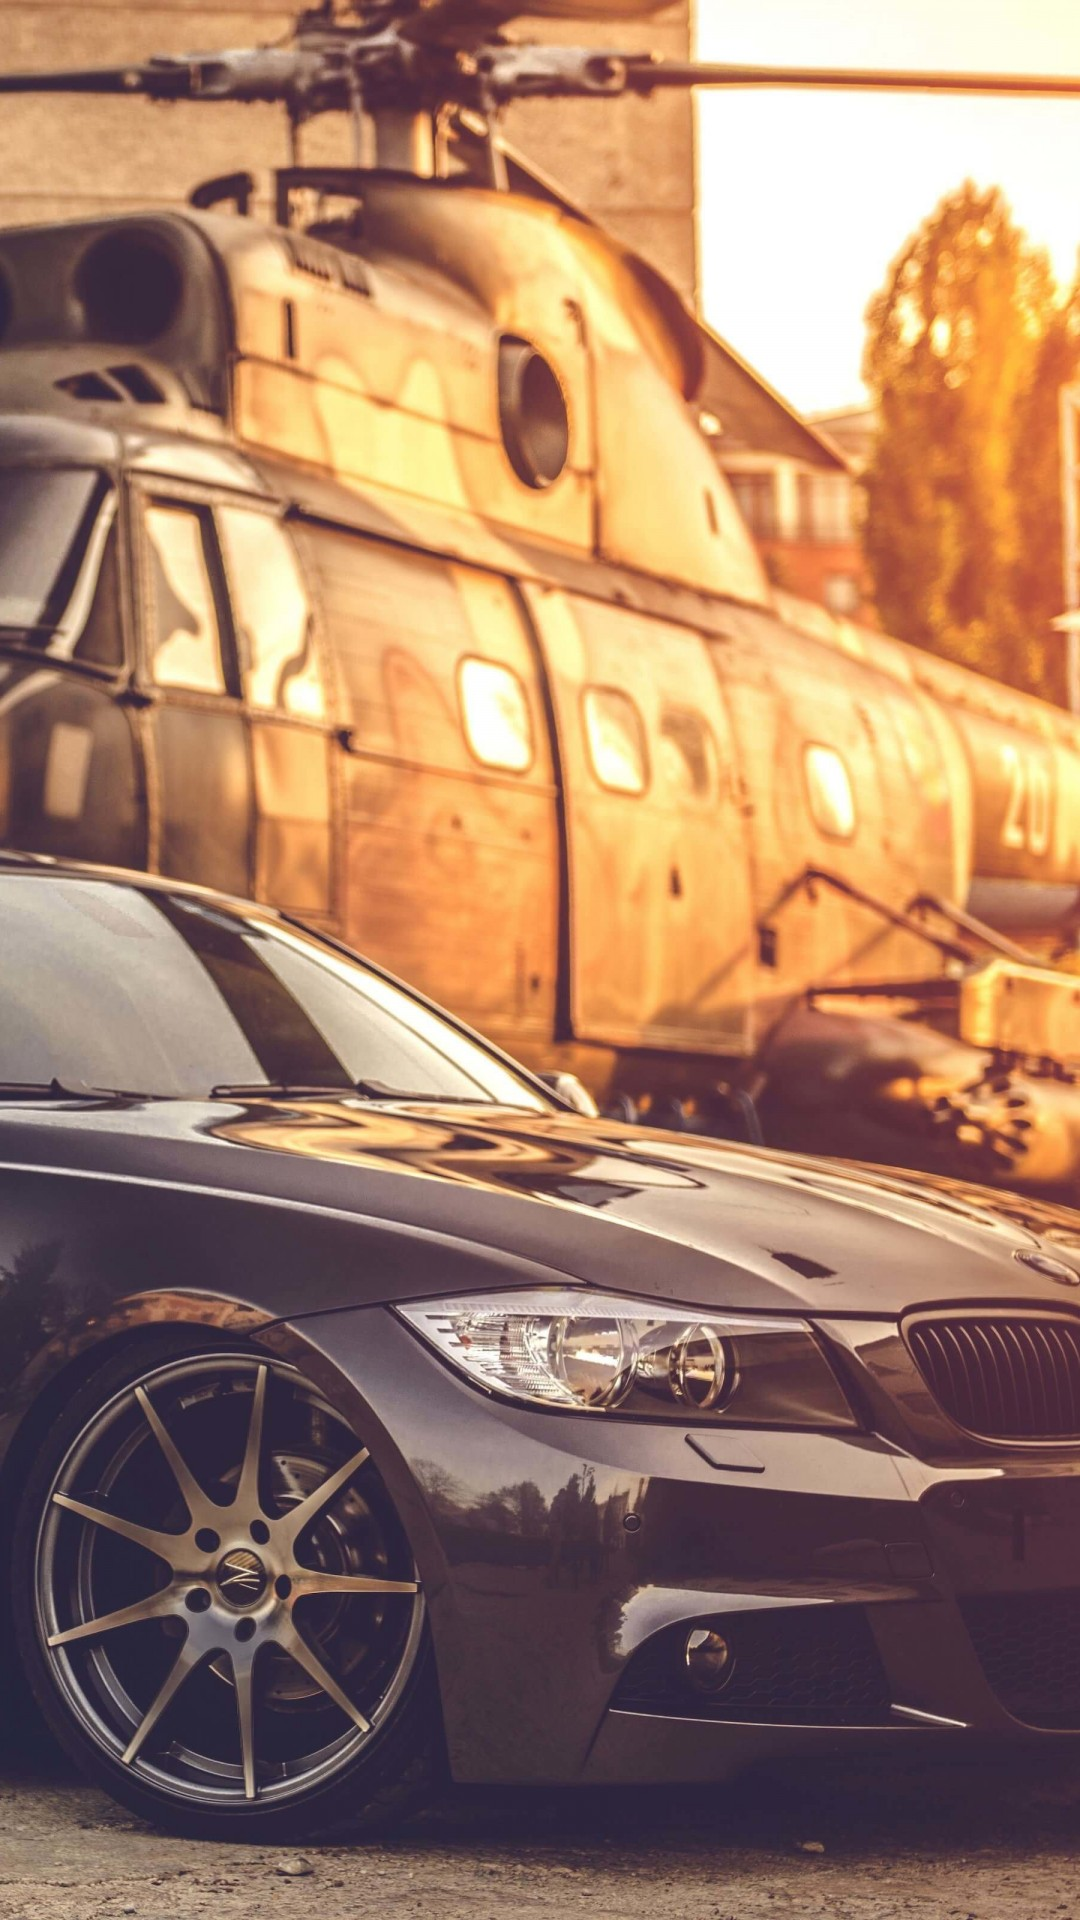 BMW E90 on Z-Performance Wheels Wallpaper for HTC One